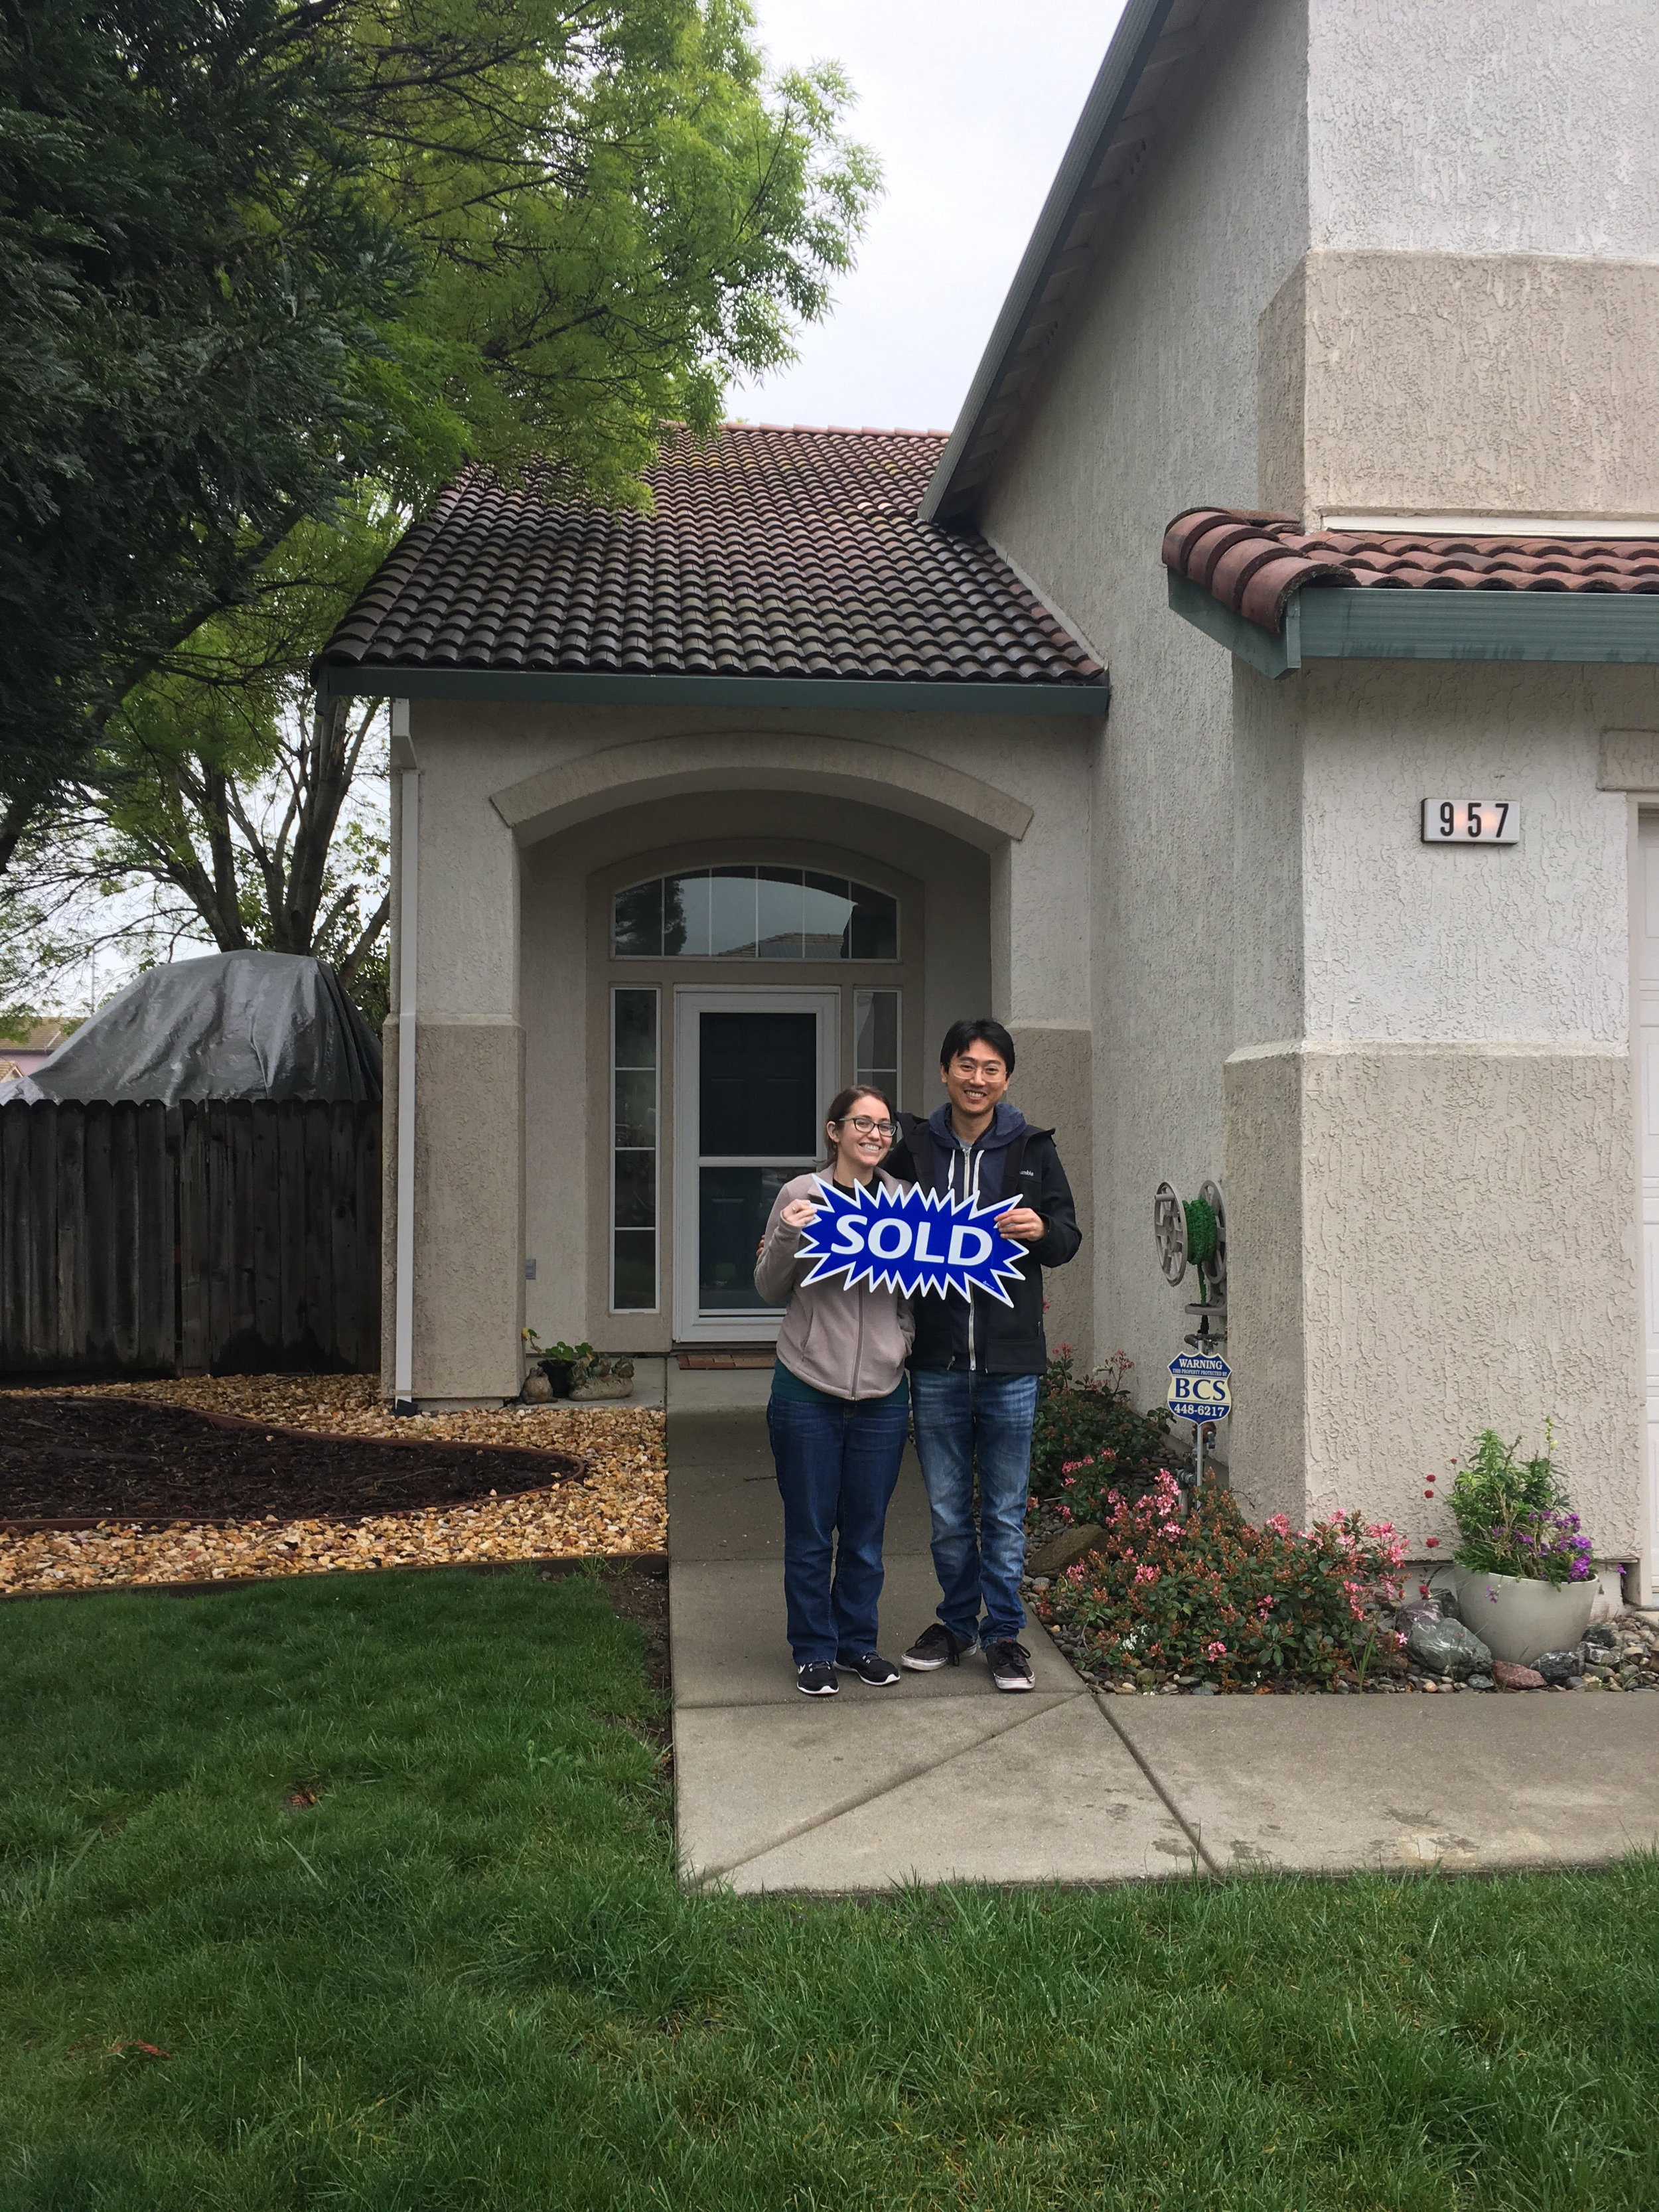 Happy Buyers! -Sold- 957 Topaz Cir - We worked together to beat-out multiple competing offers.